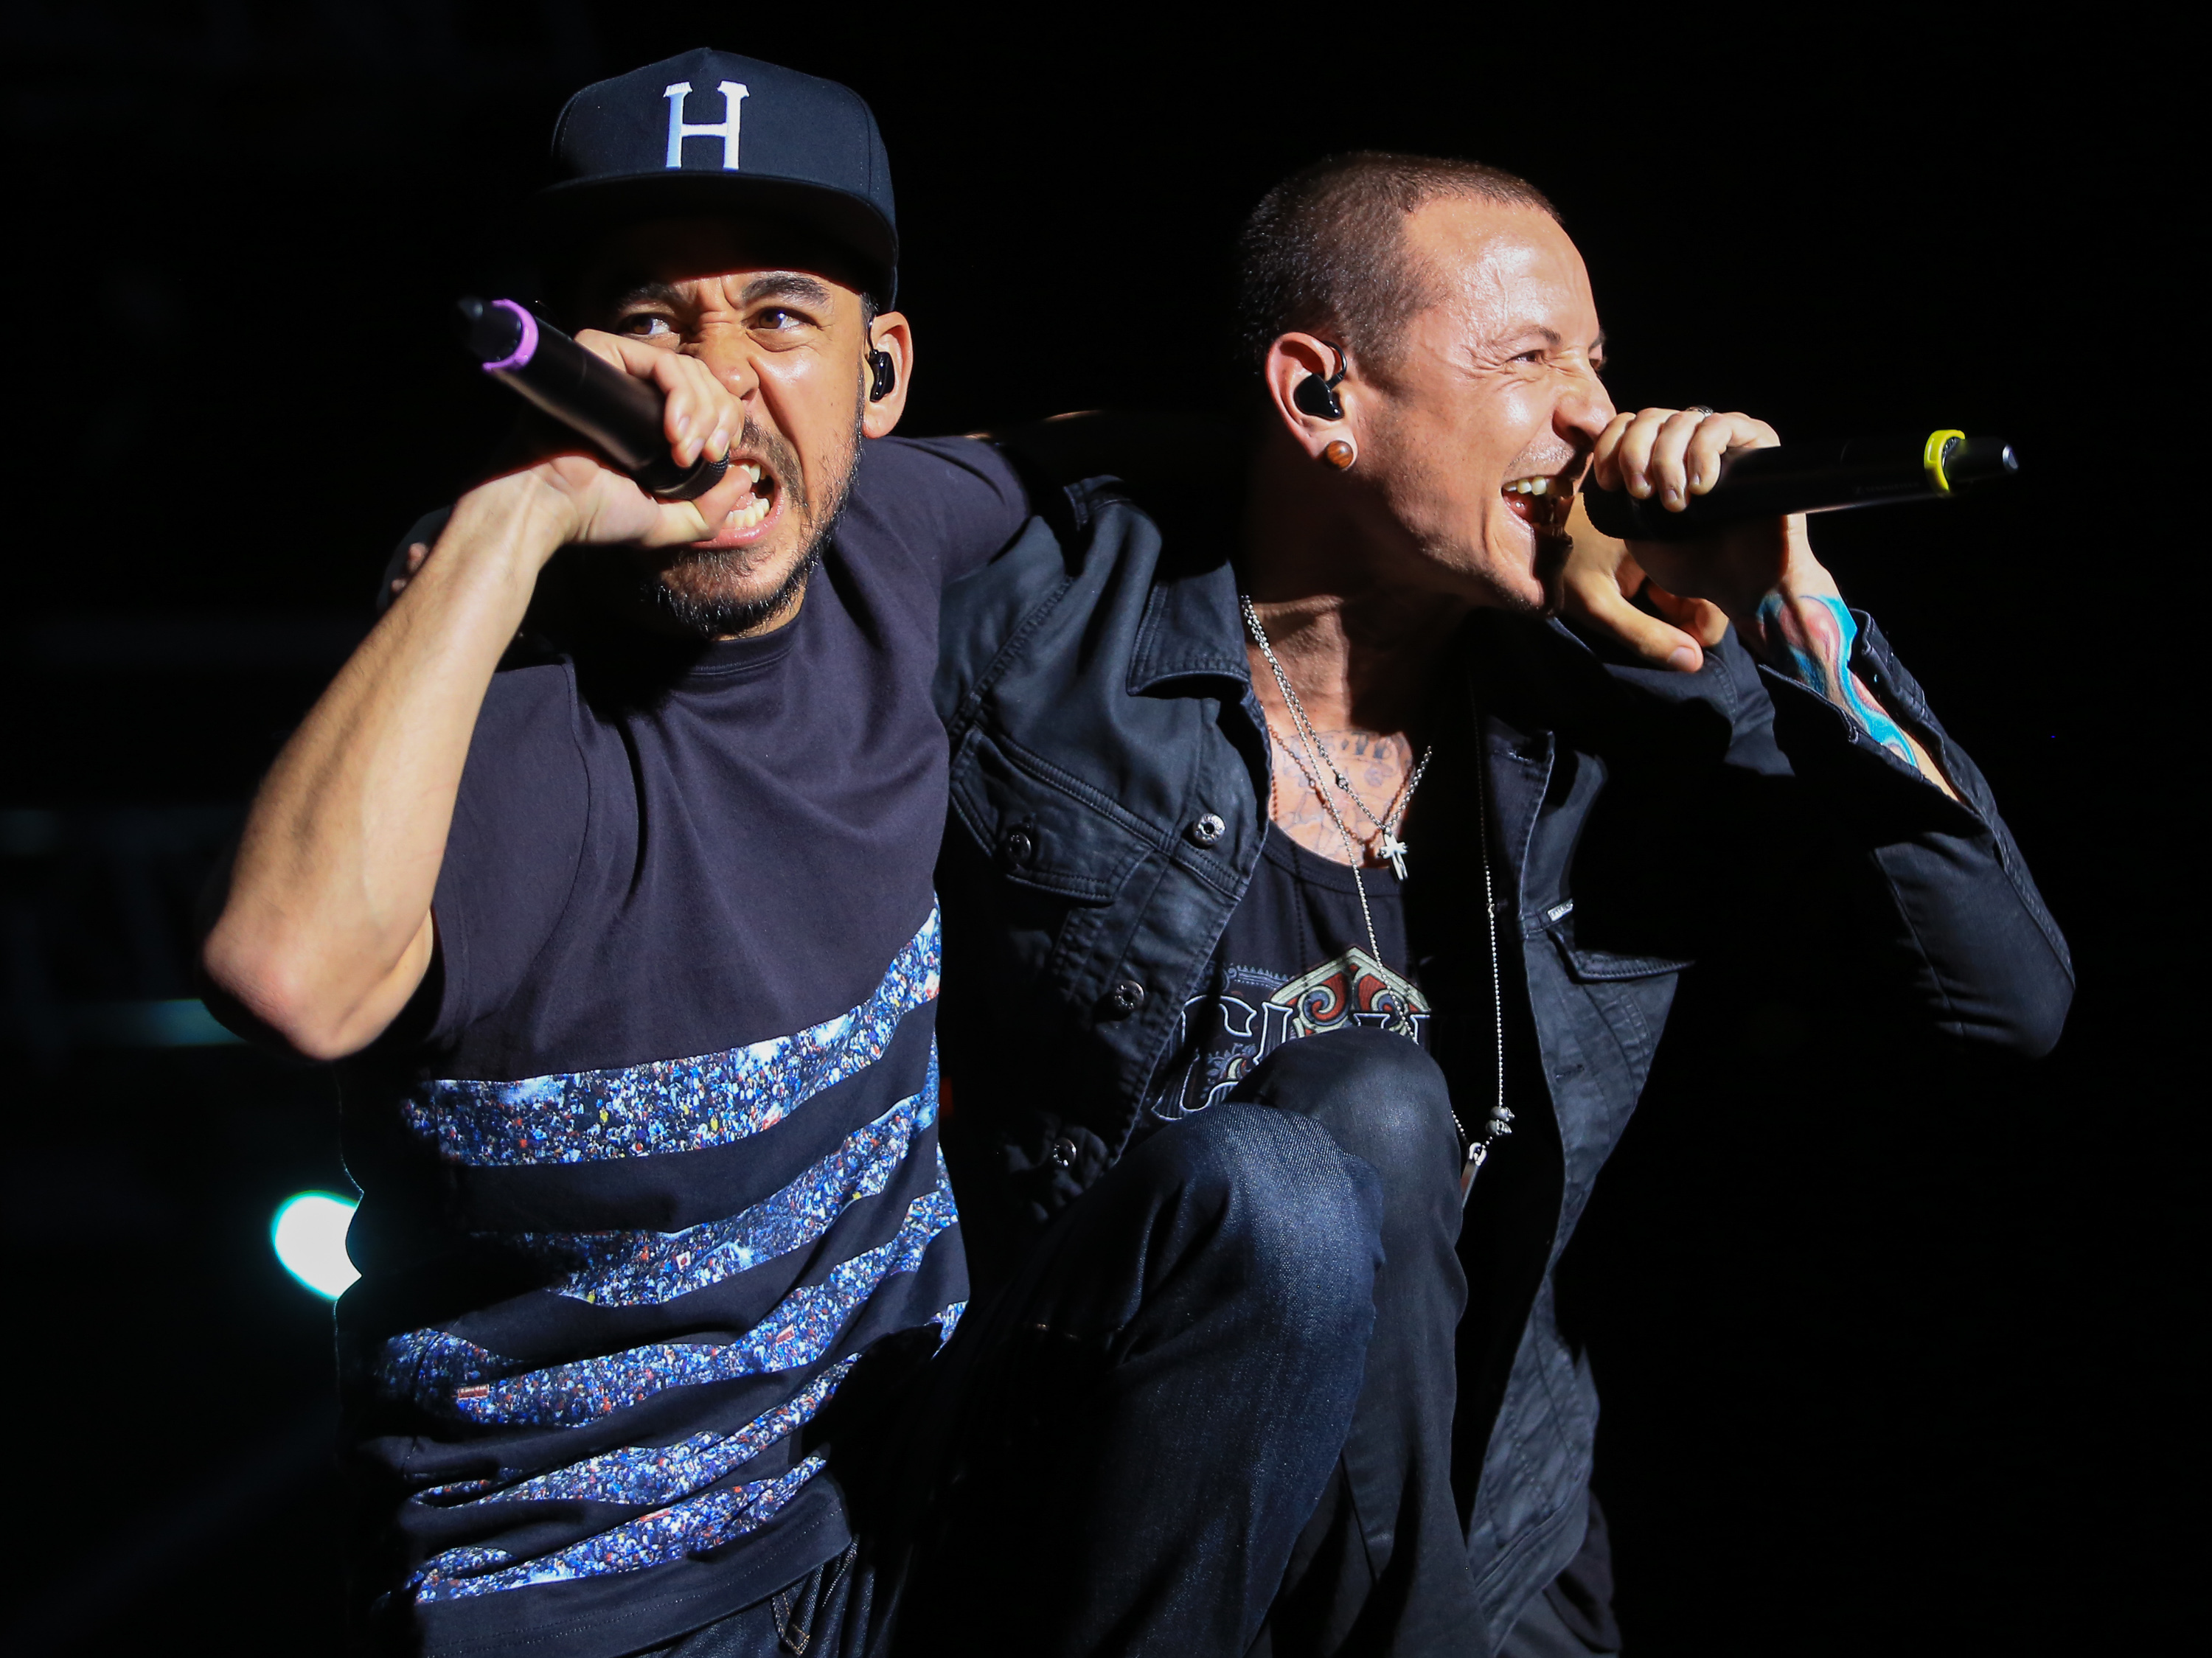 Musicians Mike Shinoda and Chester Bennington of Linkin Park perform at MAPFRE Stadium on May 17, 2015 in Columbus, Ohio.